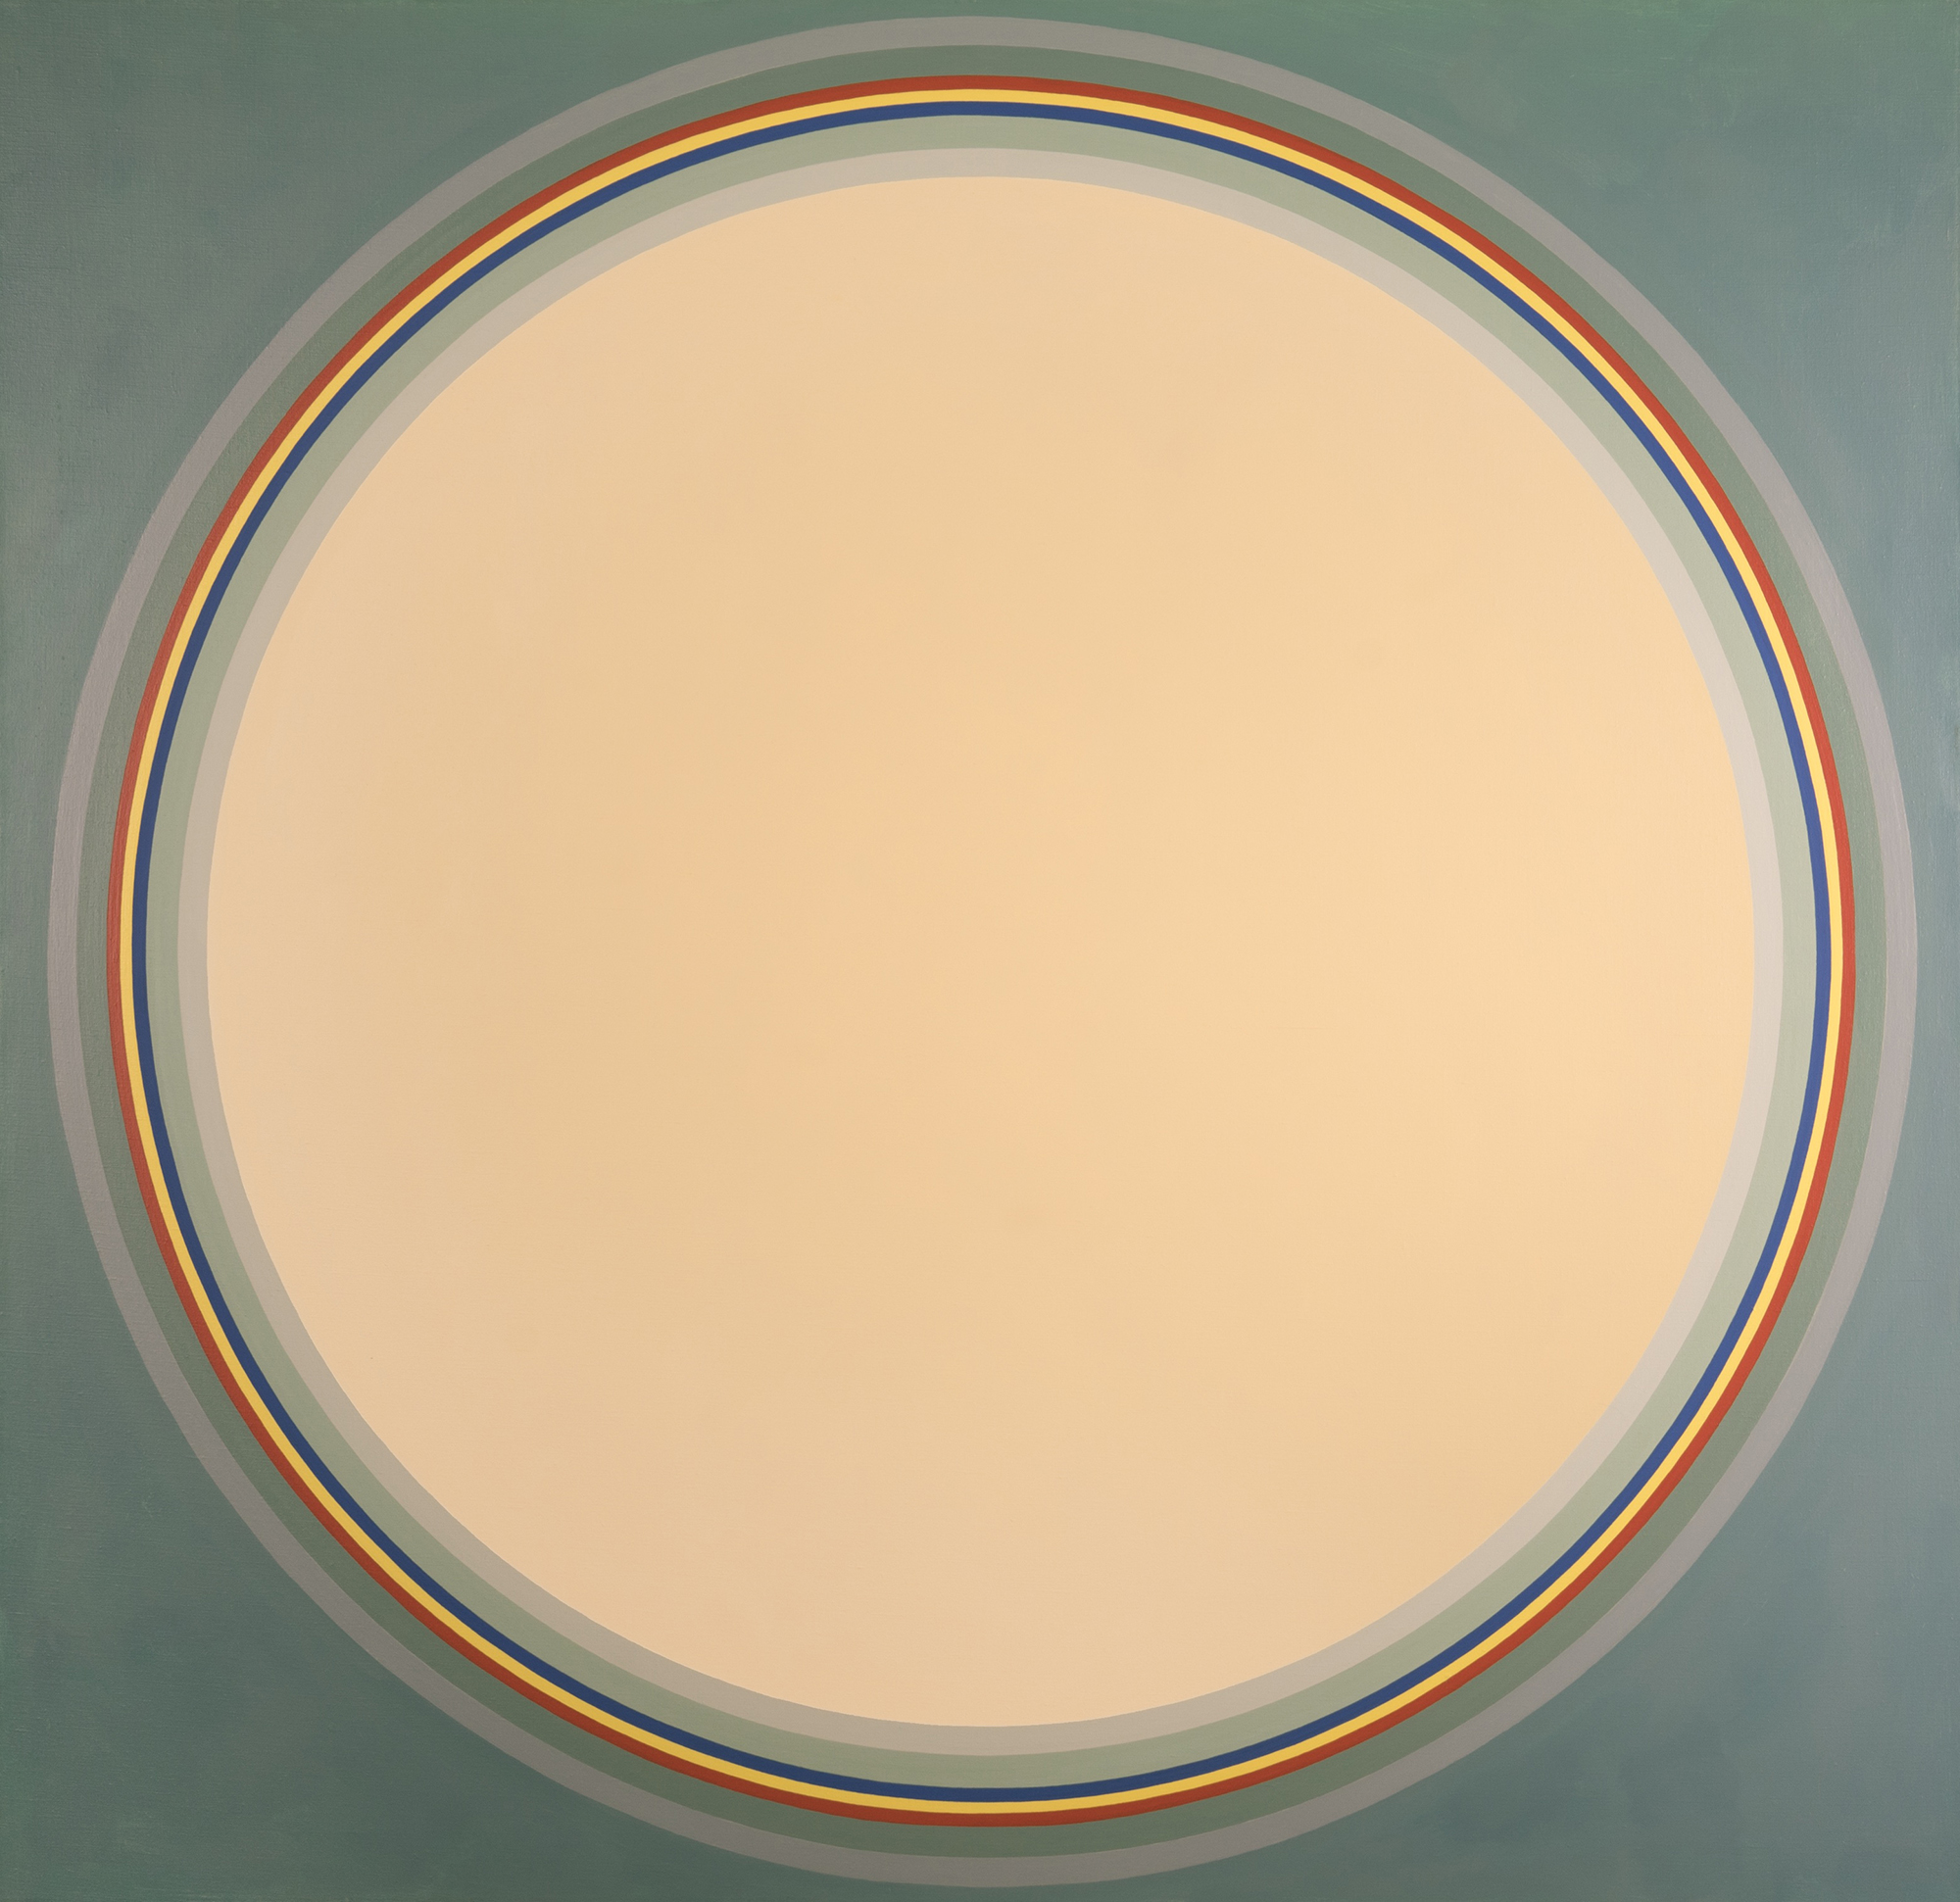 Untitled (Disc)   ,  Acrylic on Canvas, 1972, 58 x 60 inches